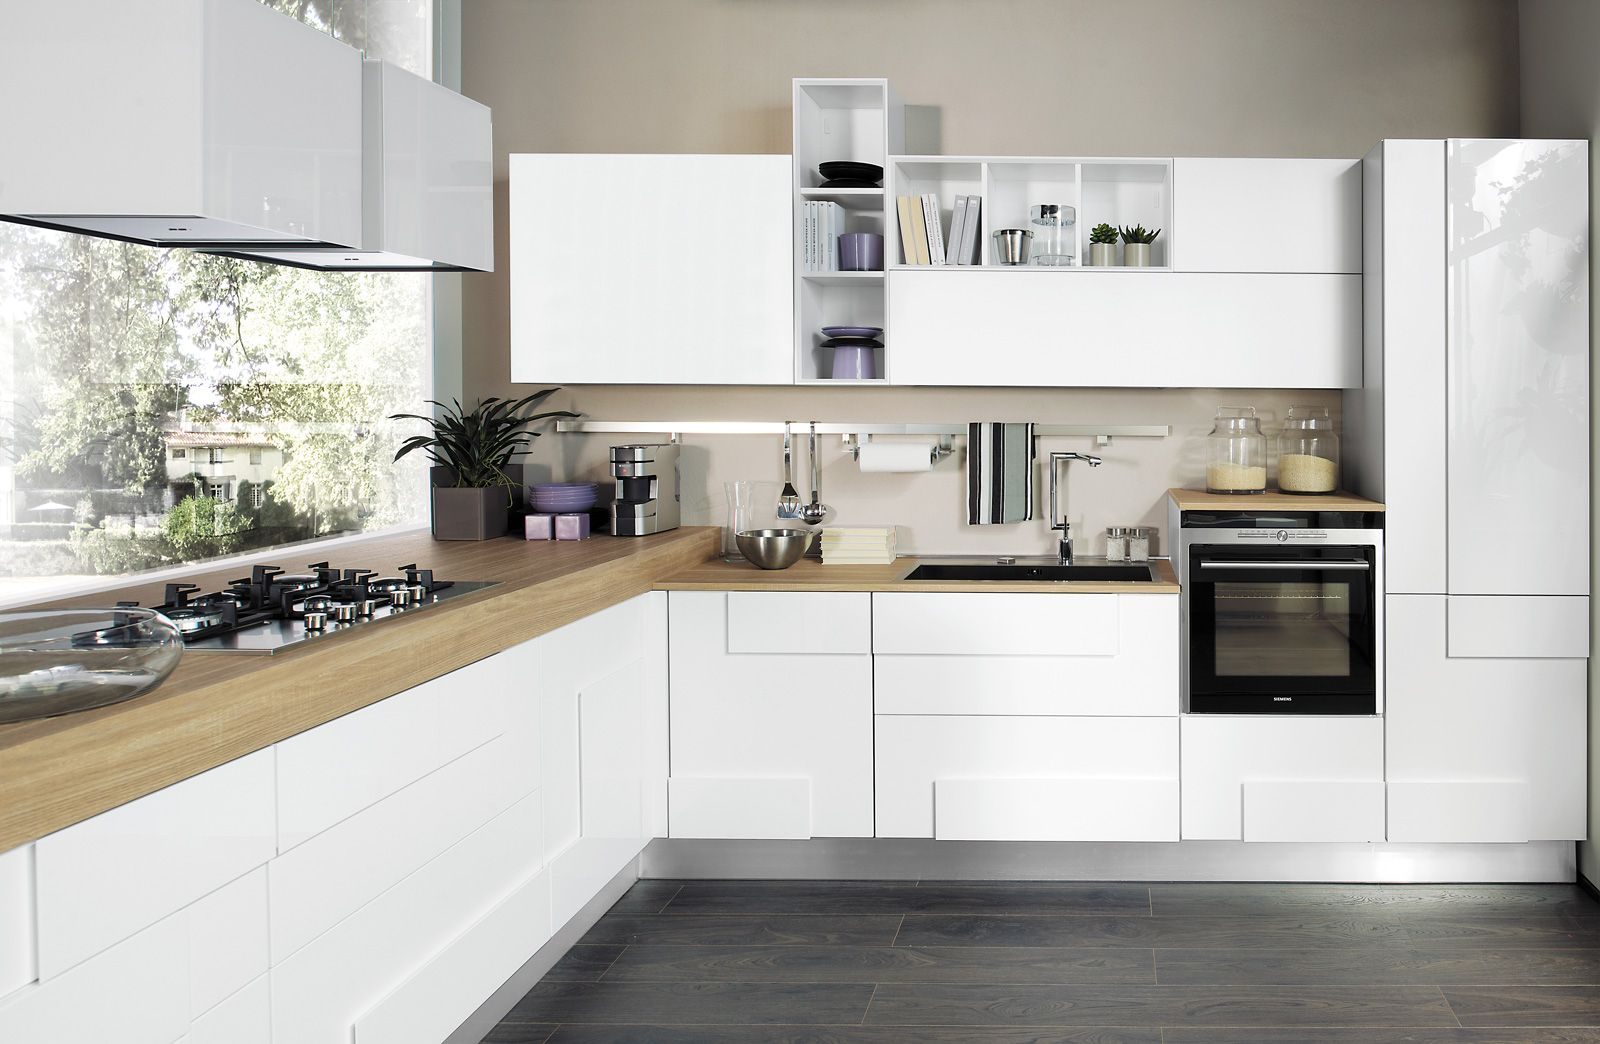 Cucine Moderne Bianca - Home Design E Interior Ideas - Refoias.net